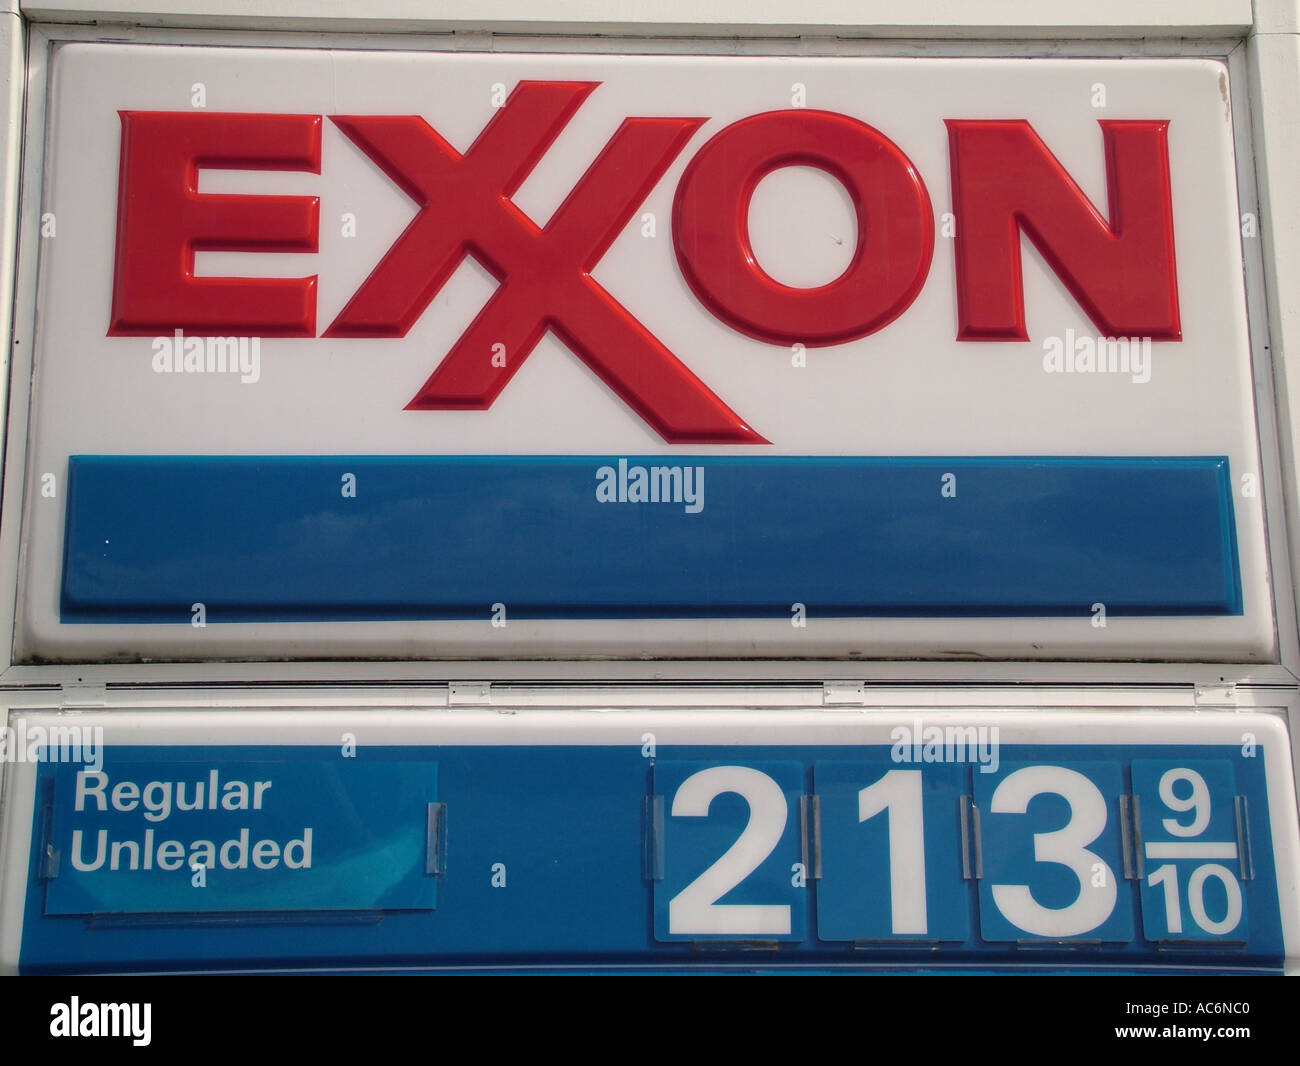 AJD42832, Exxon Gas Station - Stock Image